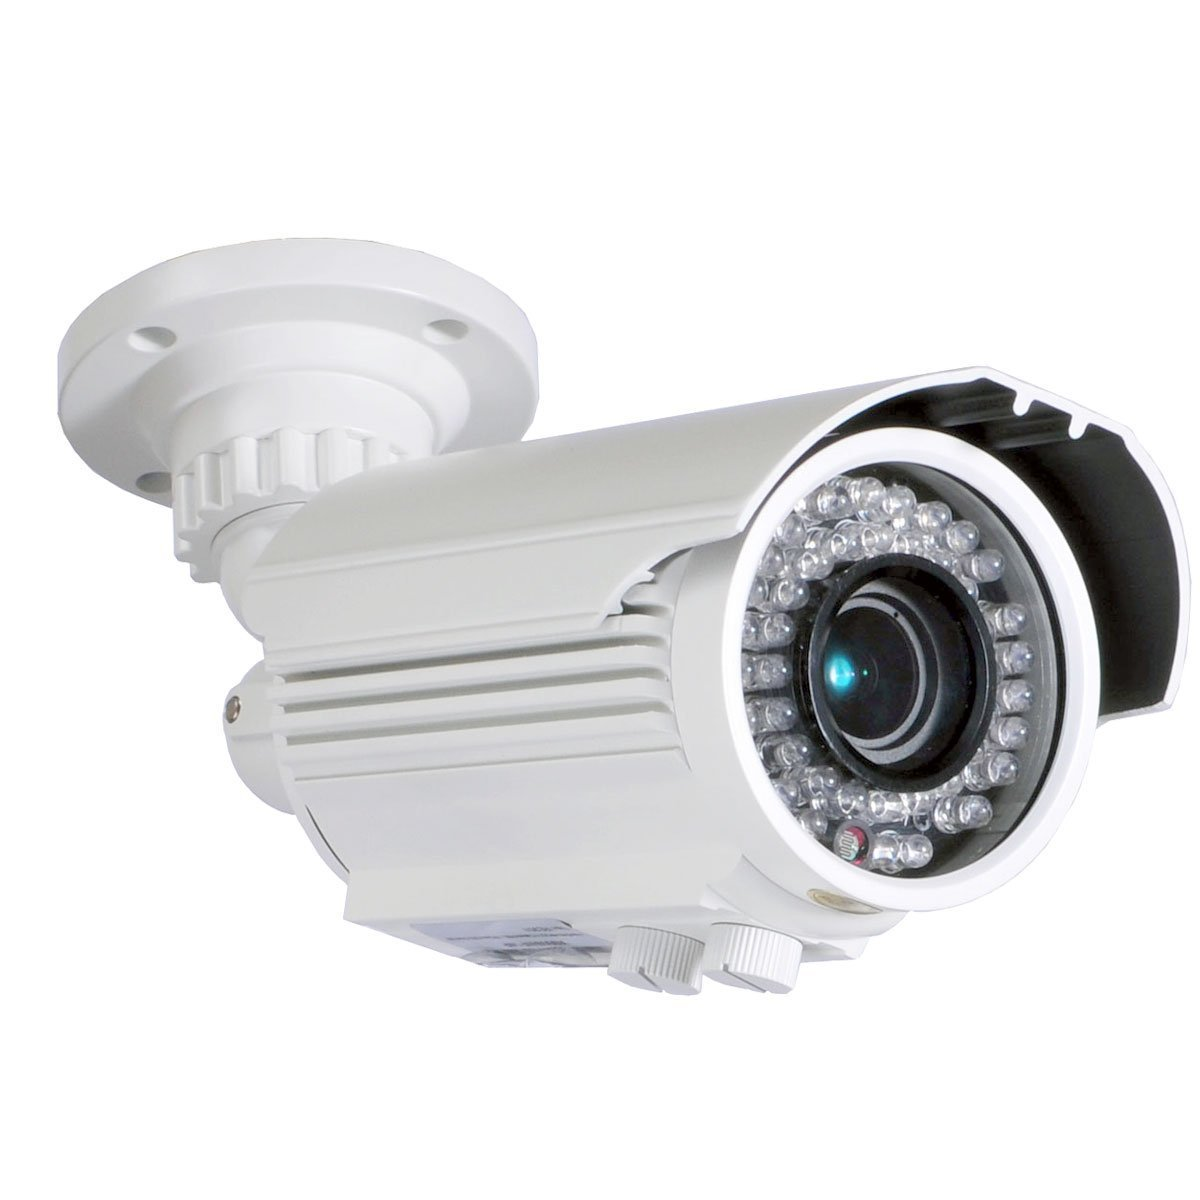 VideoSecu Built-in 1 3 Sony Effio CCD Bullet 700TVL High Resolution Day Night Outdoor 42 IR Infrared LEDs Varifocal Lens Security Camera for CCTV DVR Surveillance System with Free Power Supply BTZ